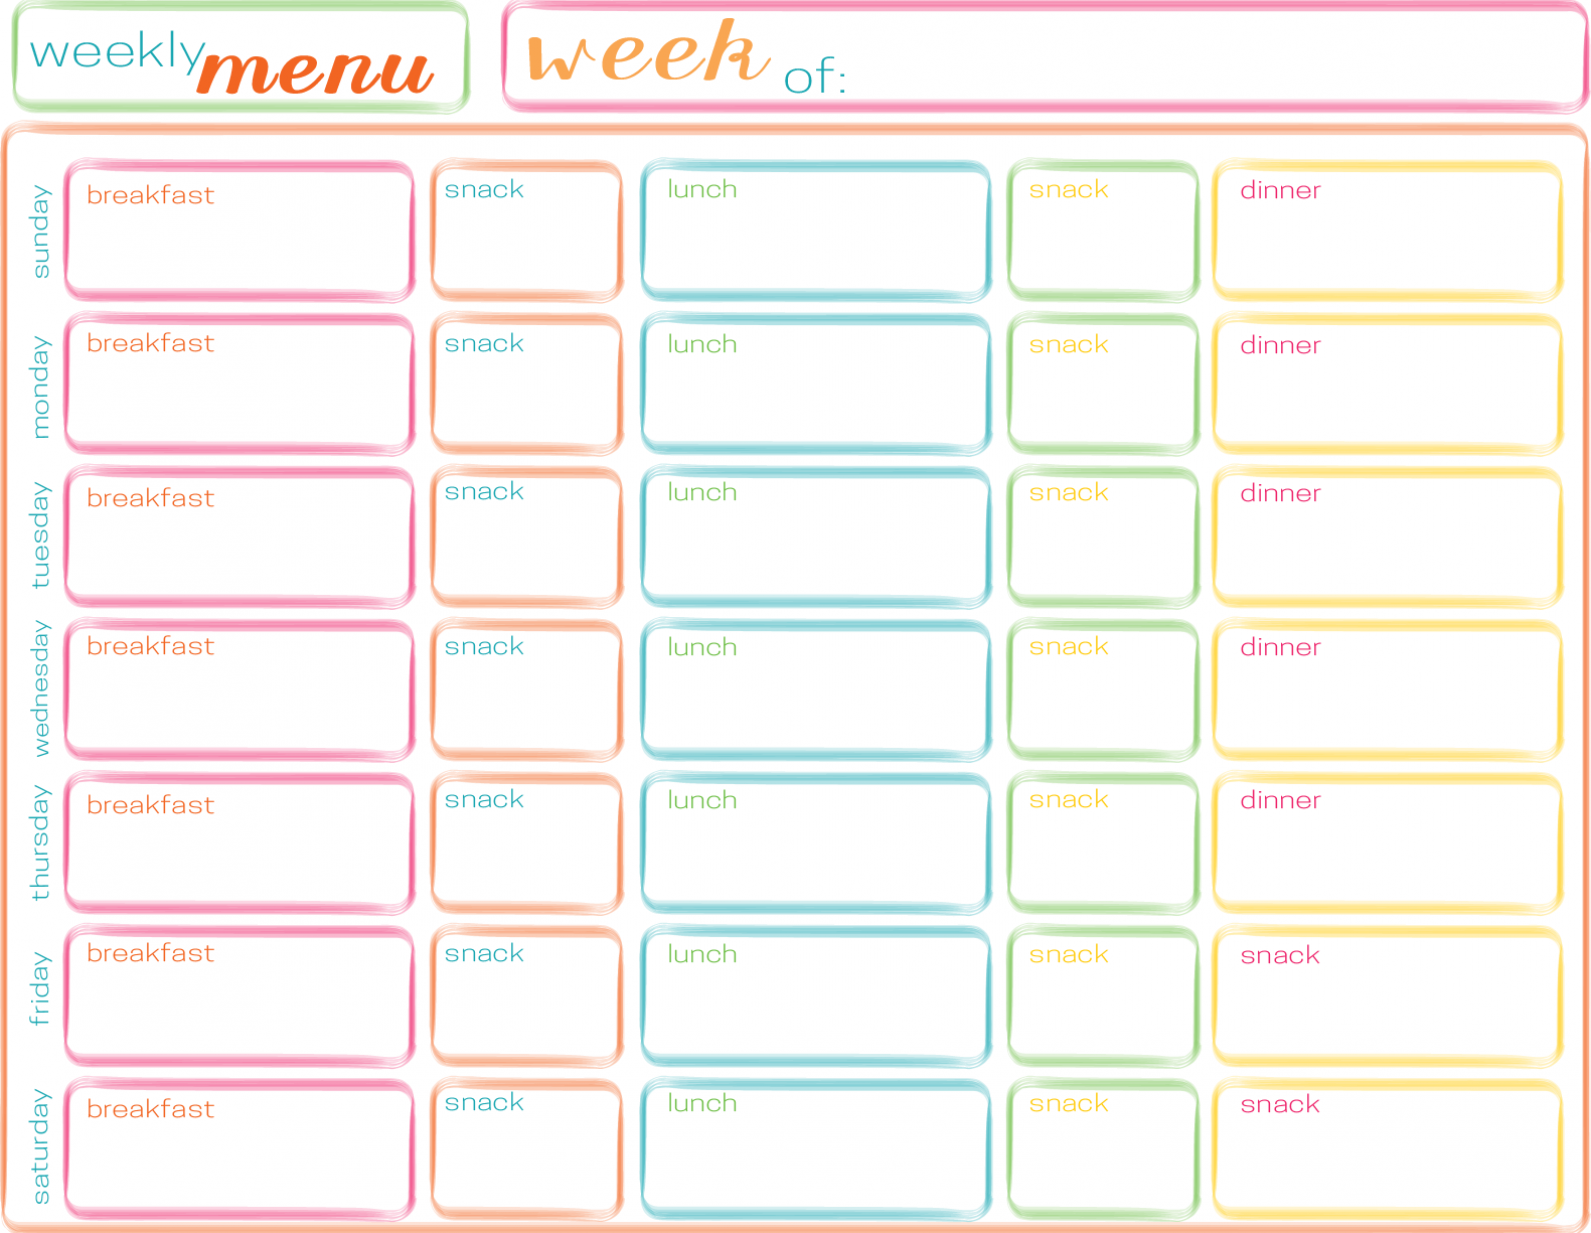 Weekly Meal Plan with Breakfast, Lunch, Dinner and Snacks The